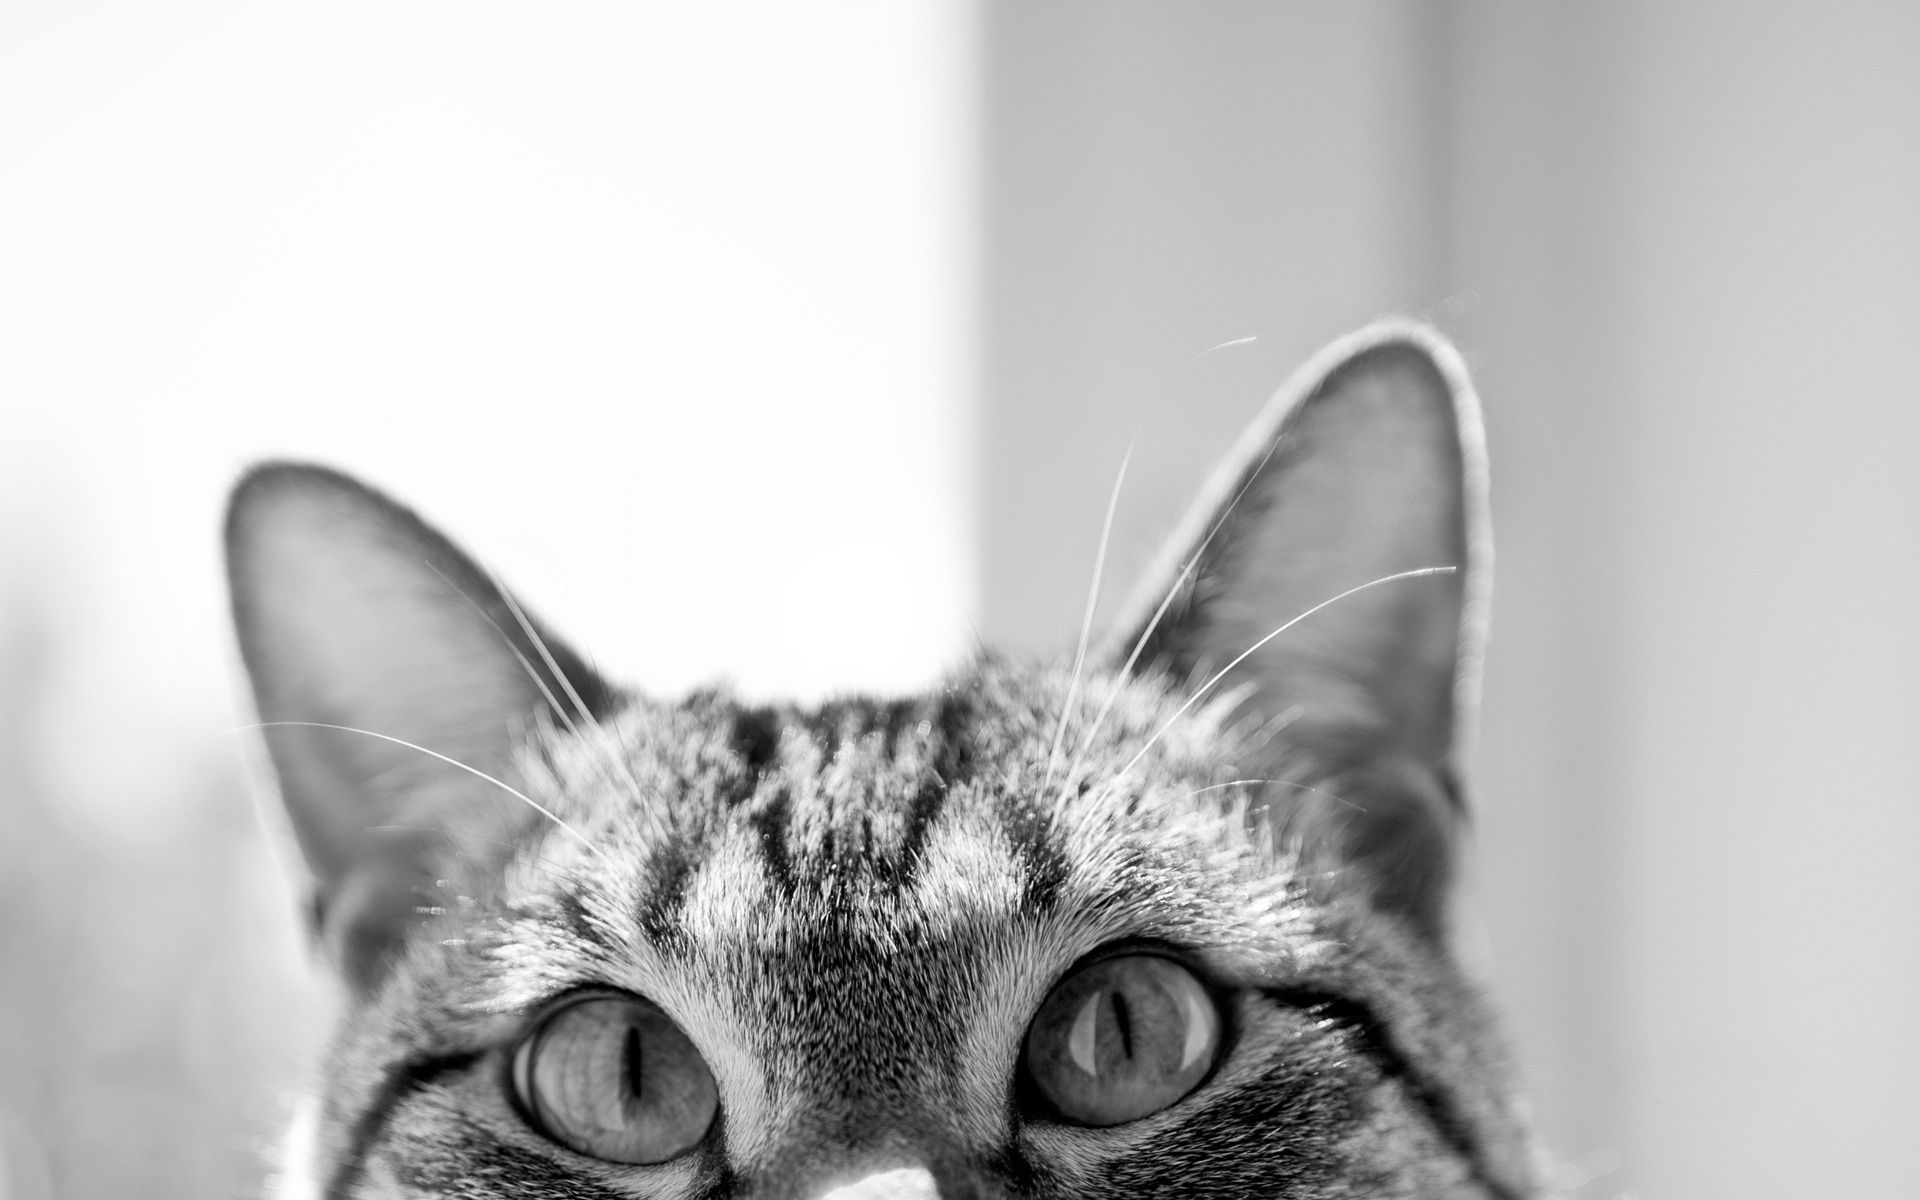 108117 download wallpaper Animals, Cat, Muzzle, Hide, Sight, Opinion, Ears, Lurk screensavers and pictures for free